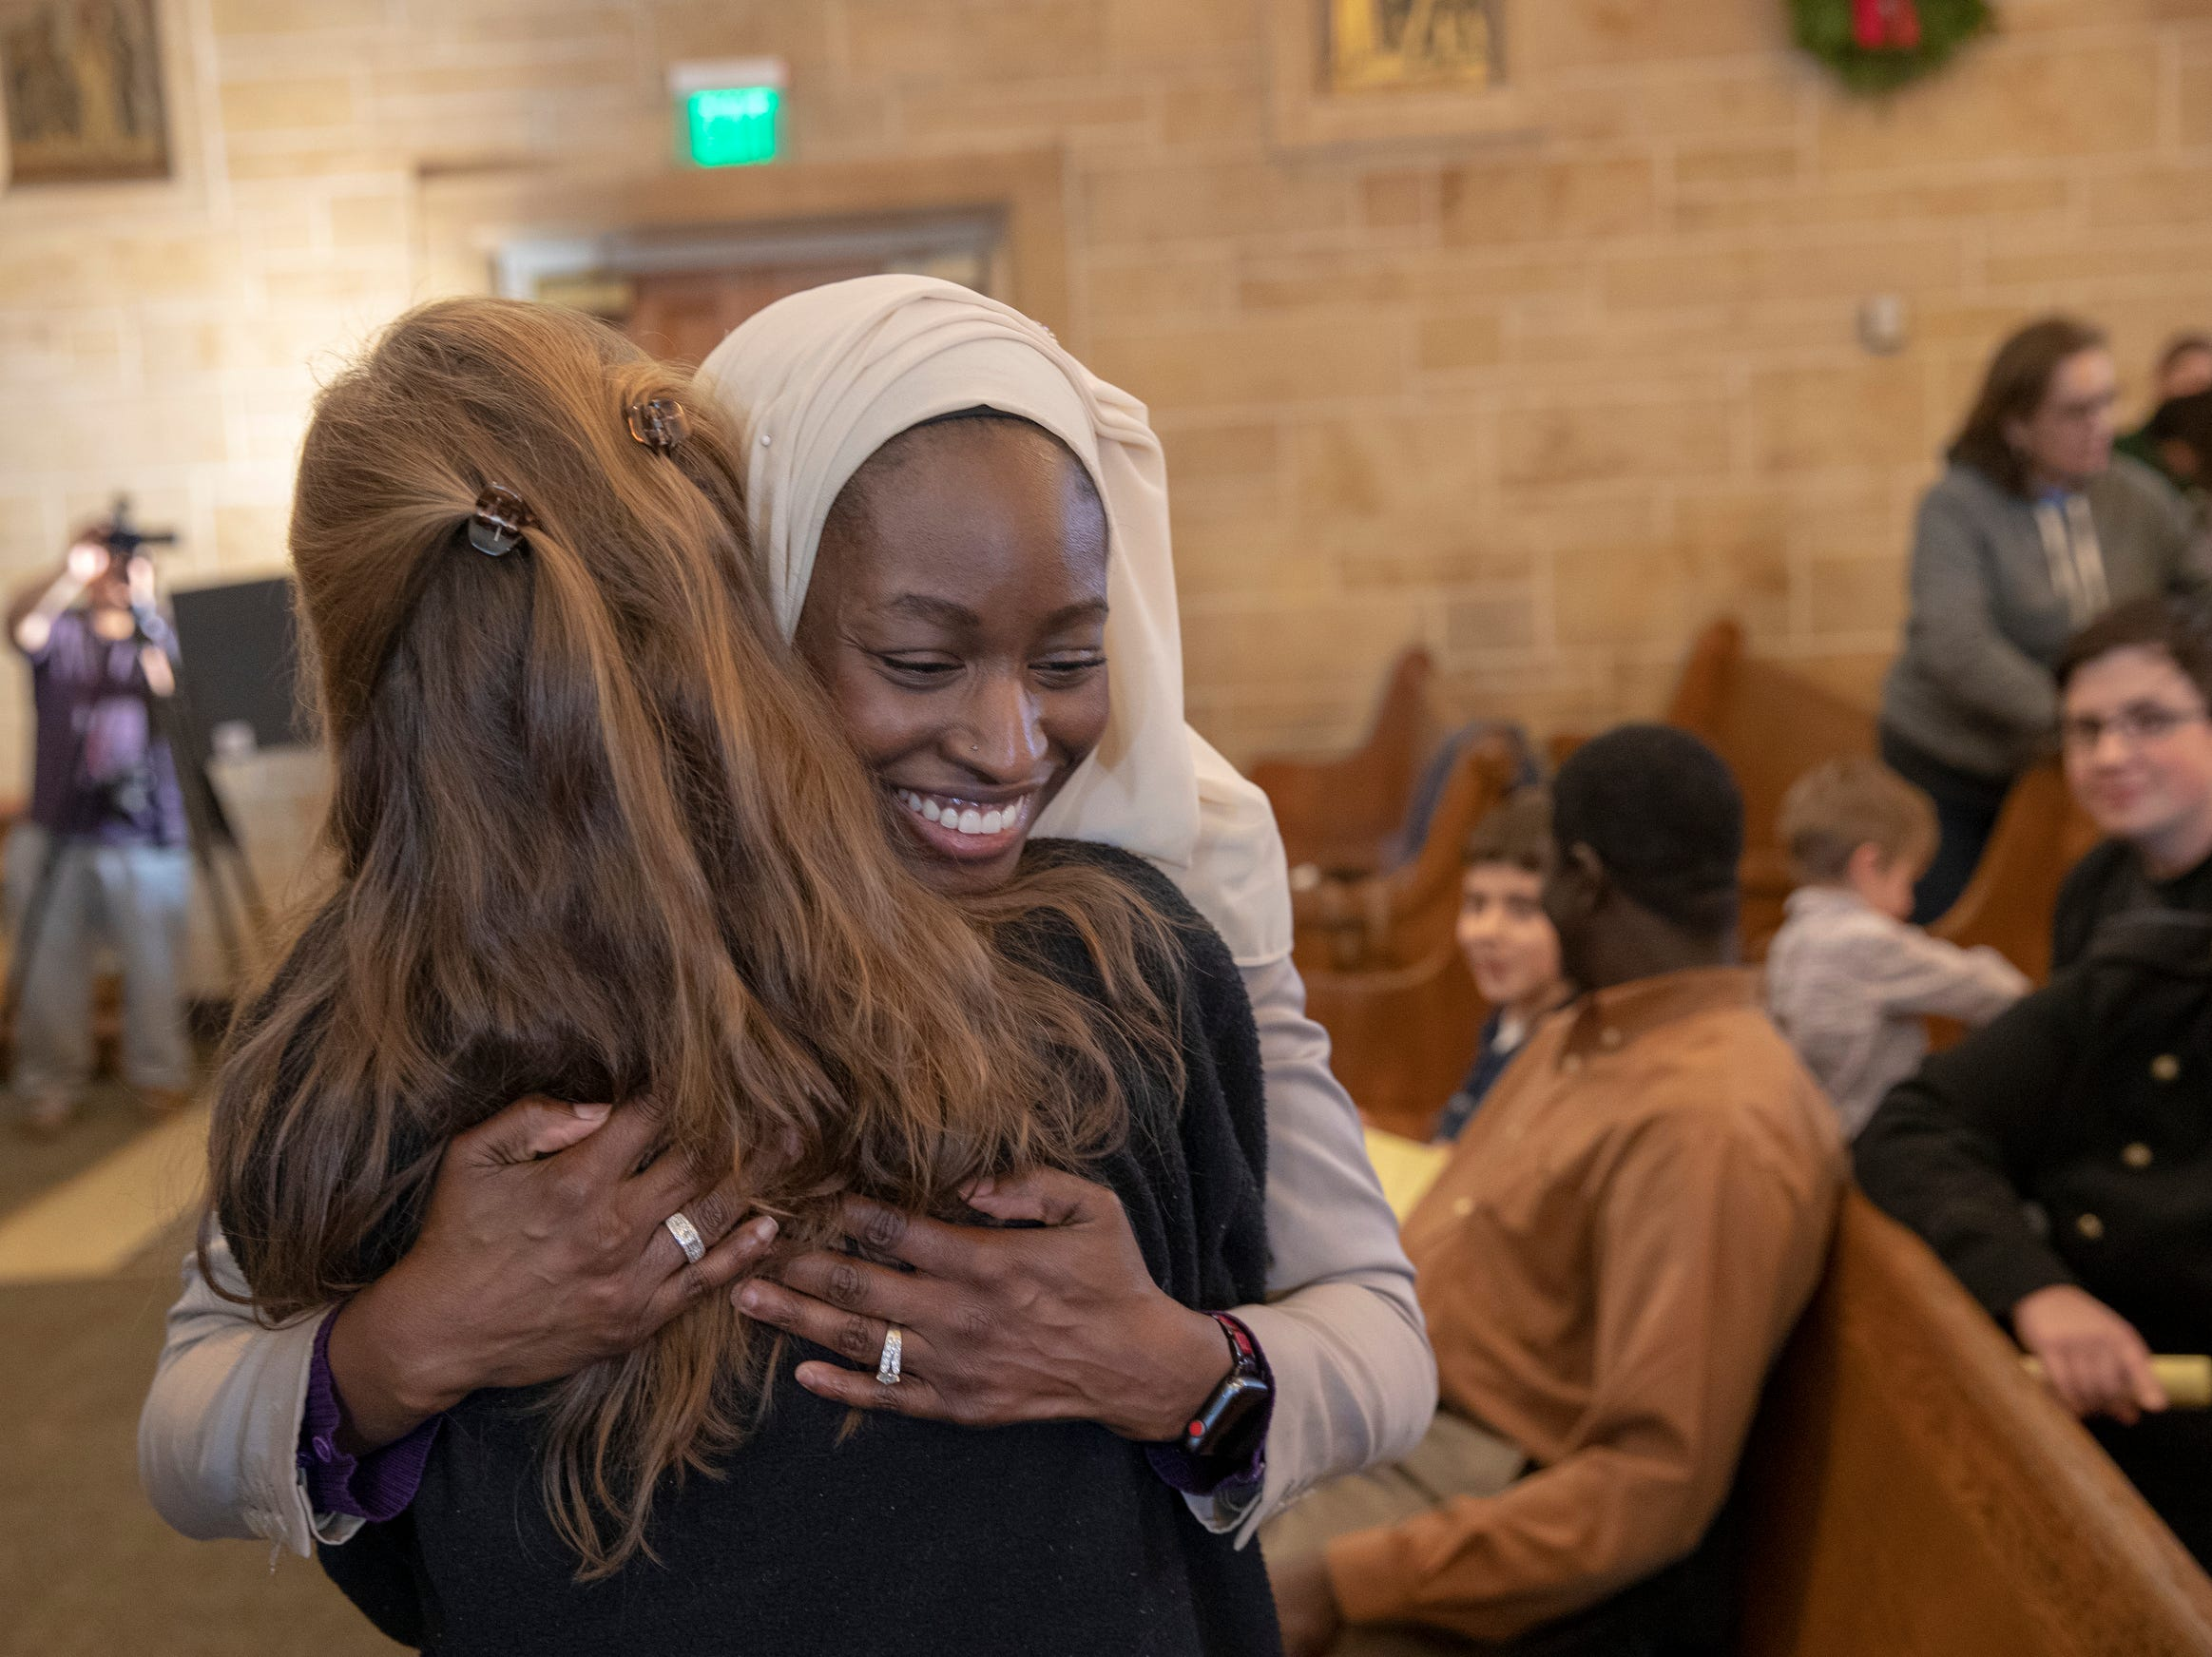 Halima Al-Khattab (left), gives a hug to Carol Tharp-Perrin, during a Christian-Muslim prayer service at Saint Philip Neri Catholic Church, Indianapolis, Sunday, Dec. 16, 2018.